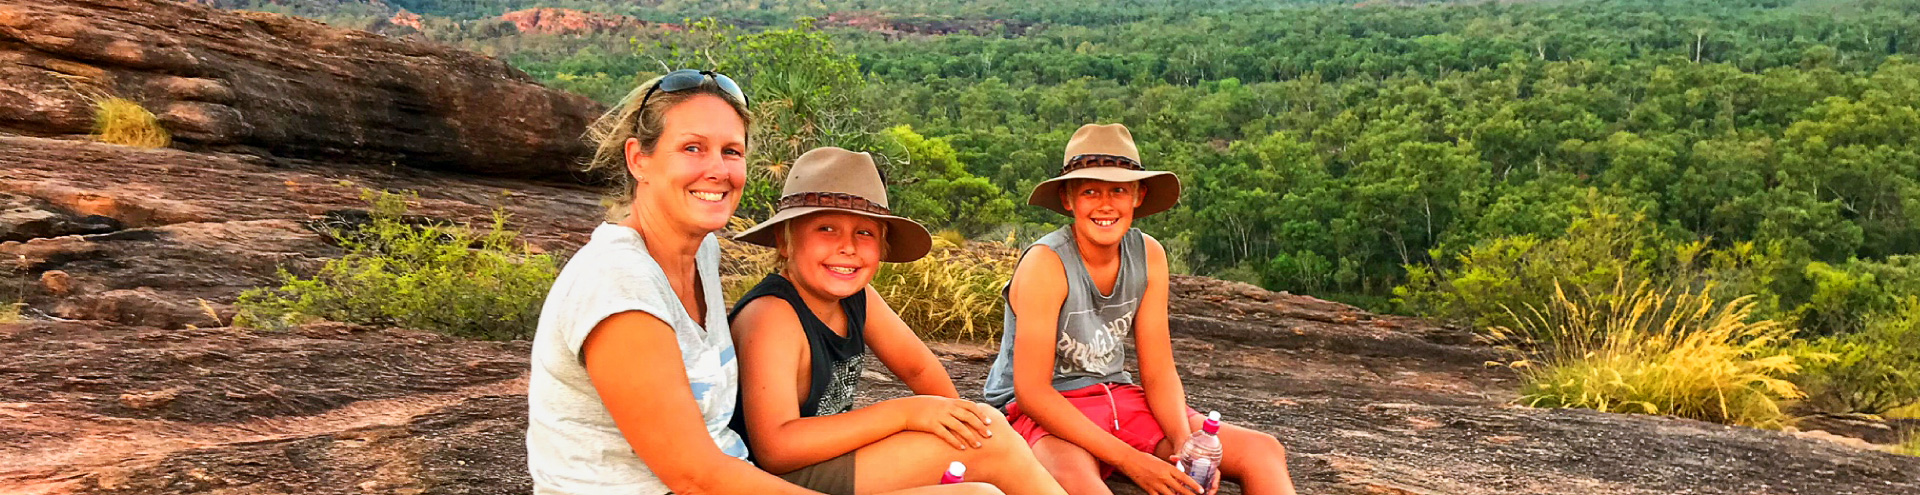 4WD self drive adventures Northern Territory